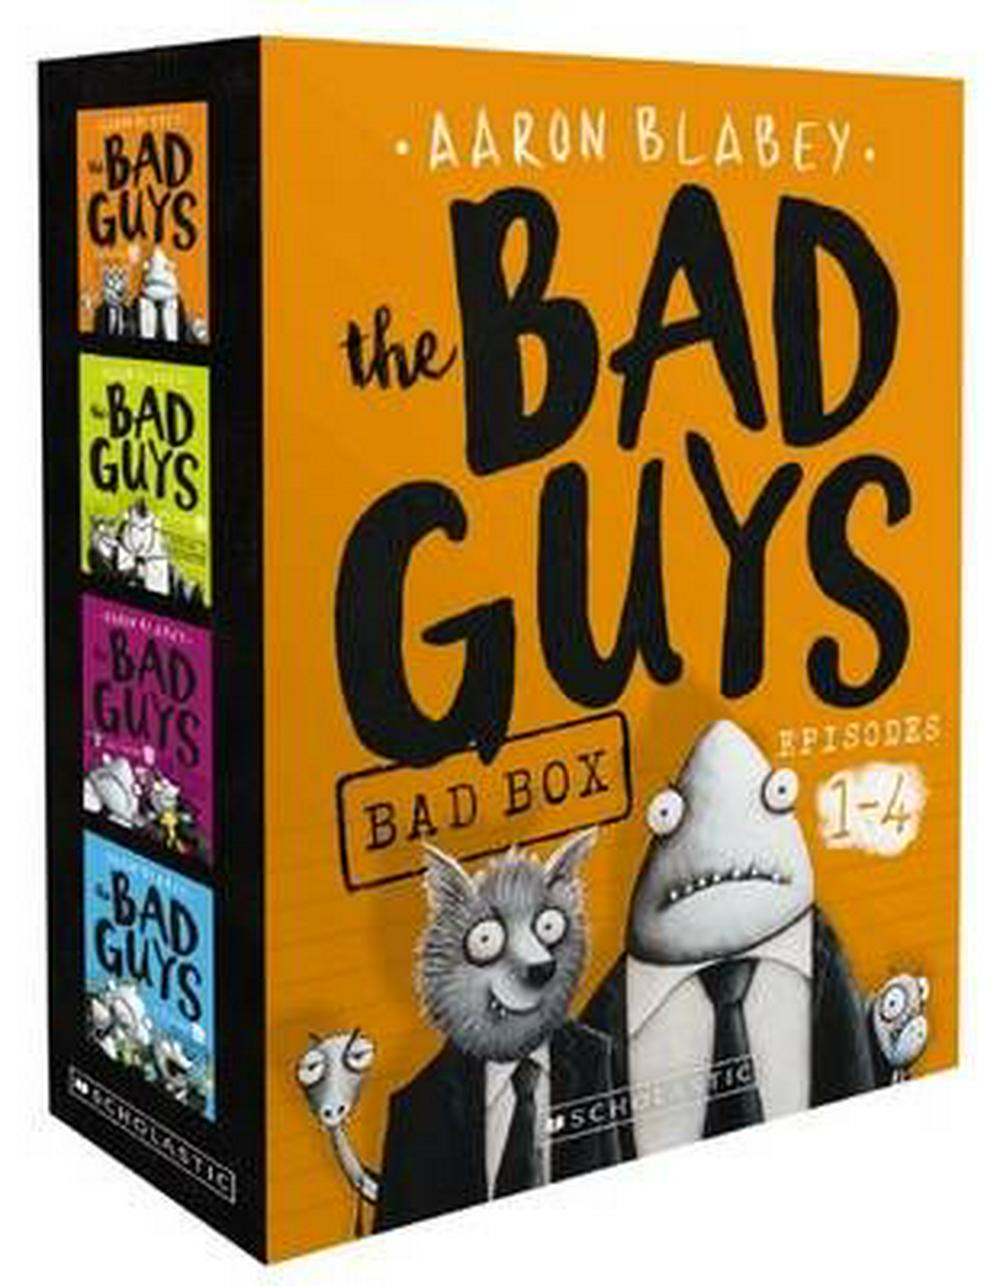 The Bad GuysBad Box